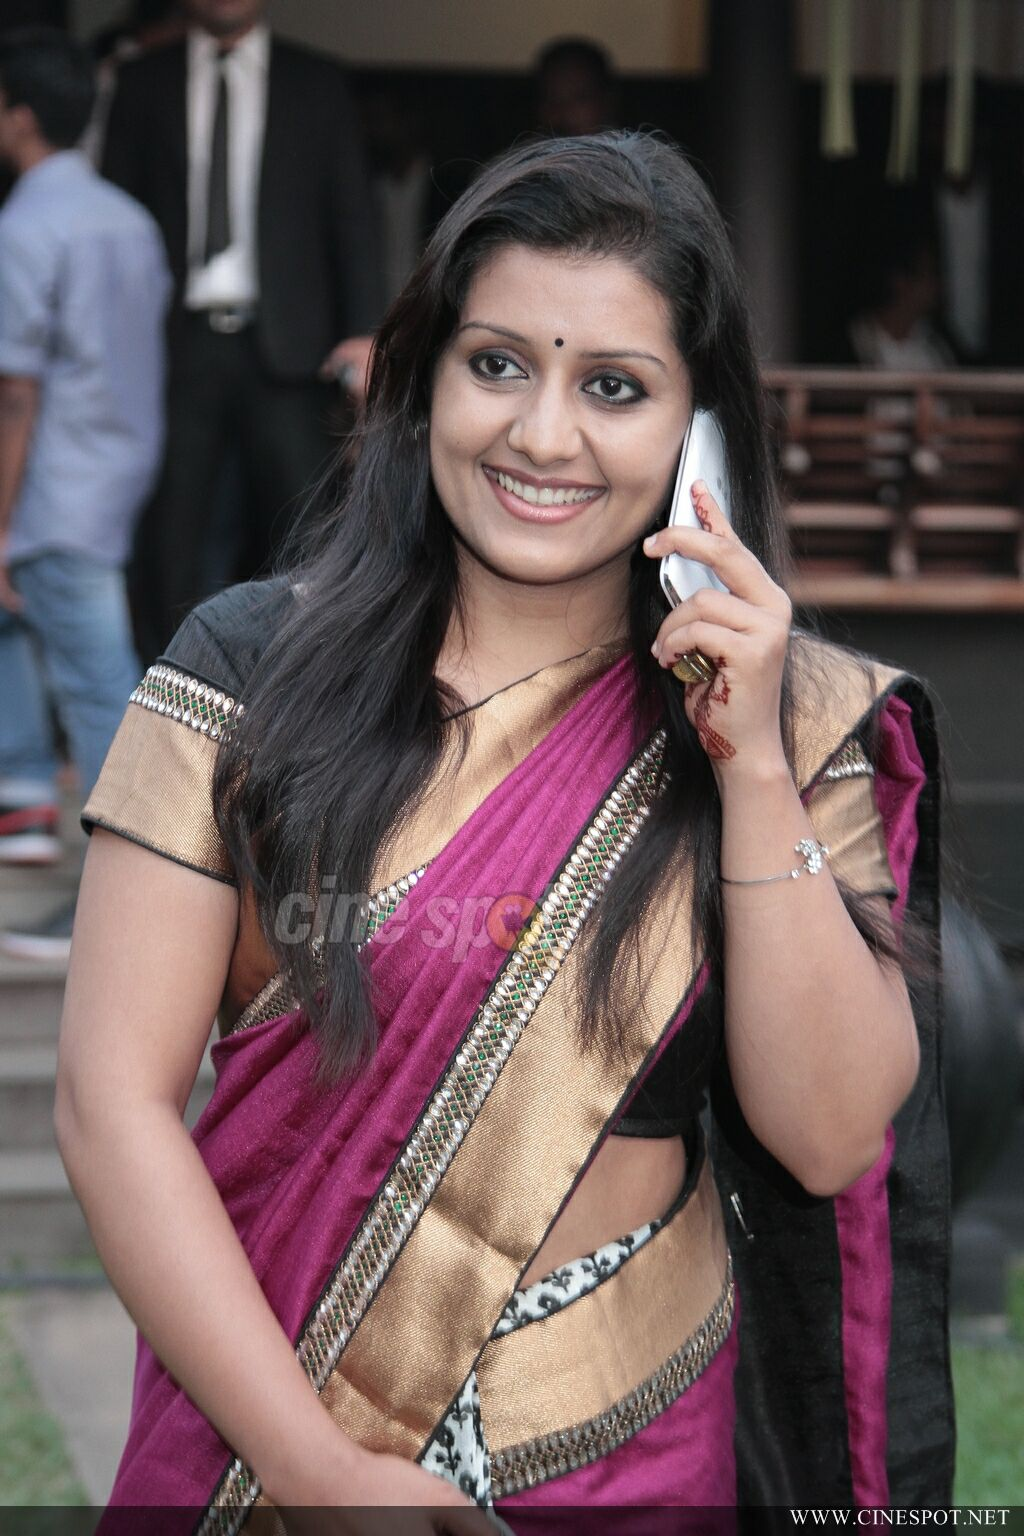 Sarayu (actress) Sarayu (actress) new photo